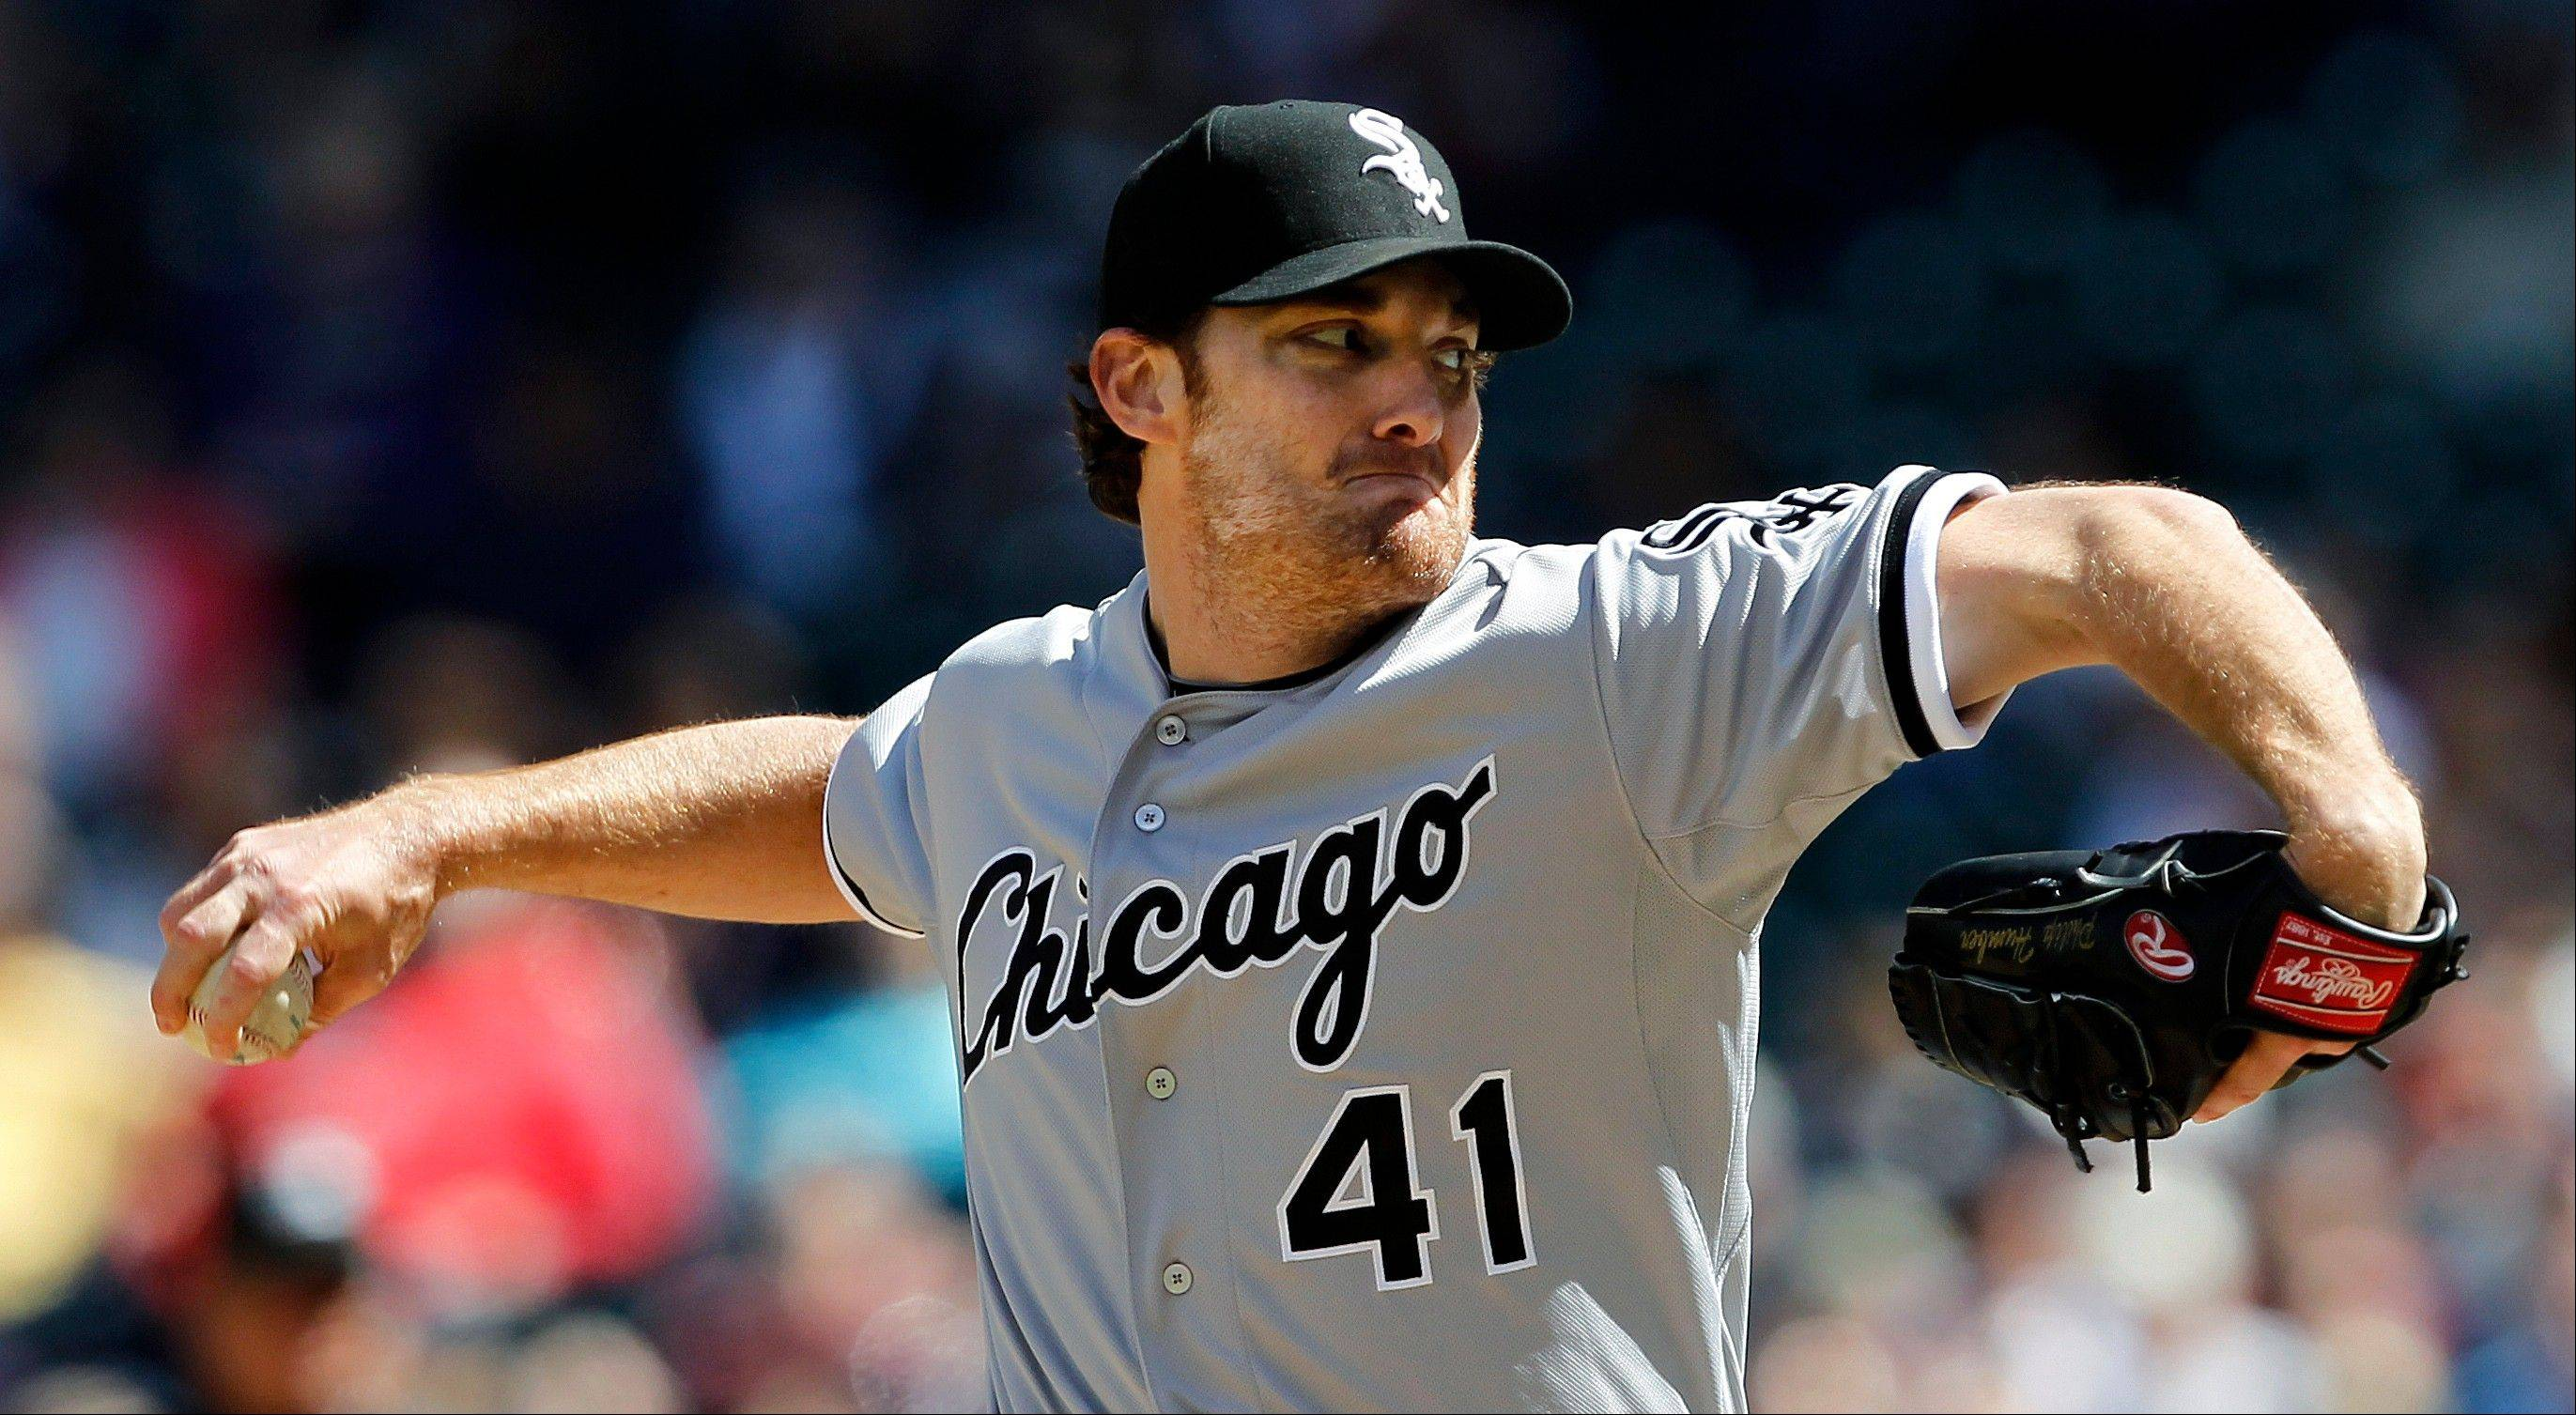 White Sox starting pitcher Phil Humber throws against the Seattle Mariners in the third inning.